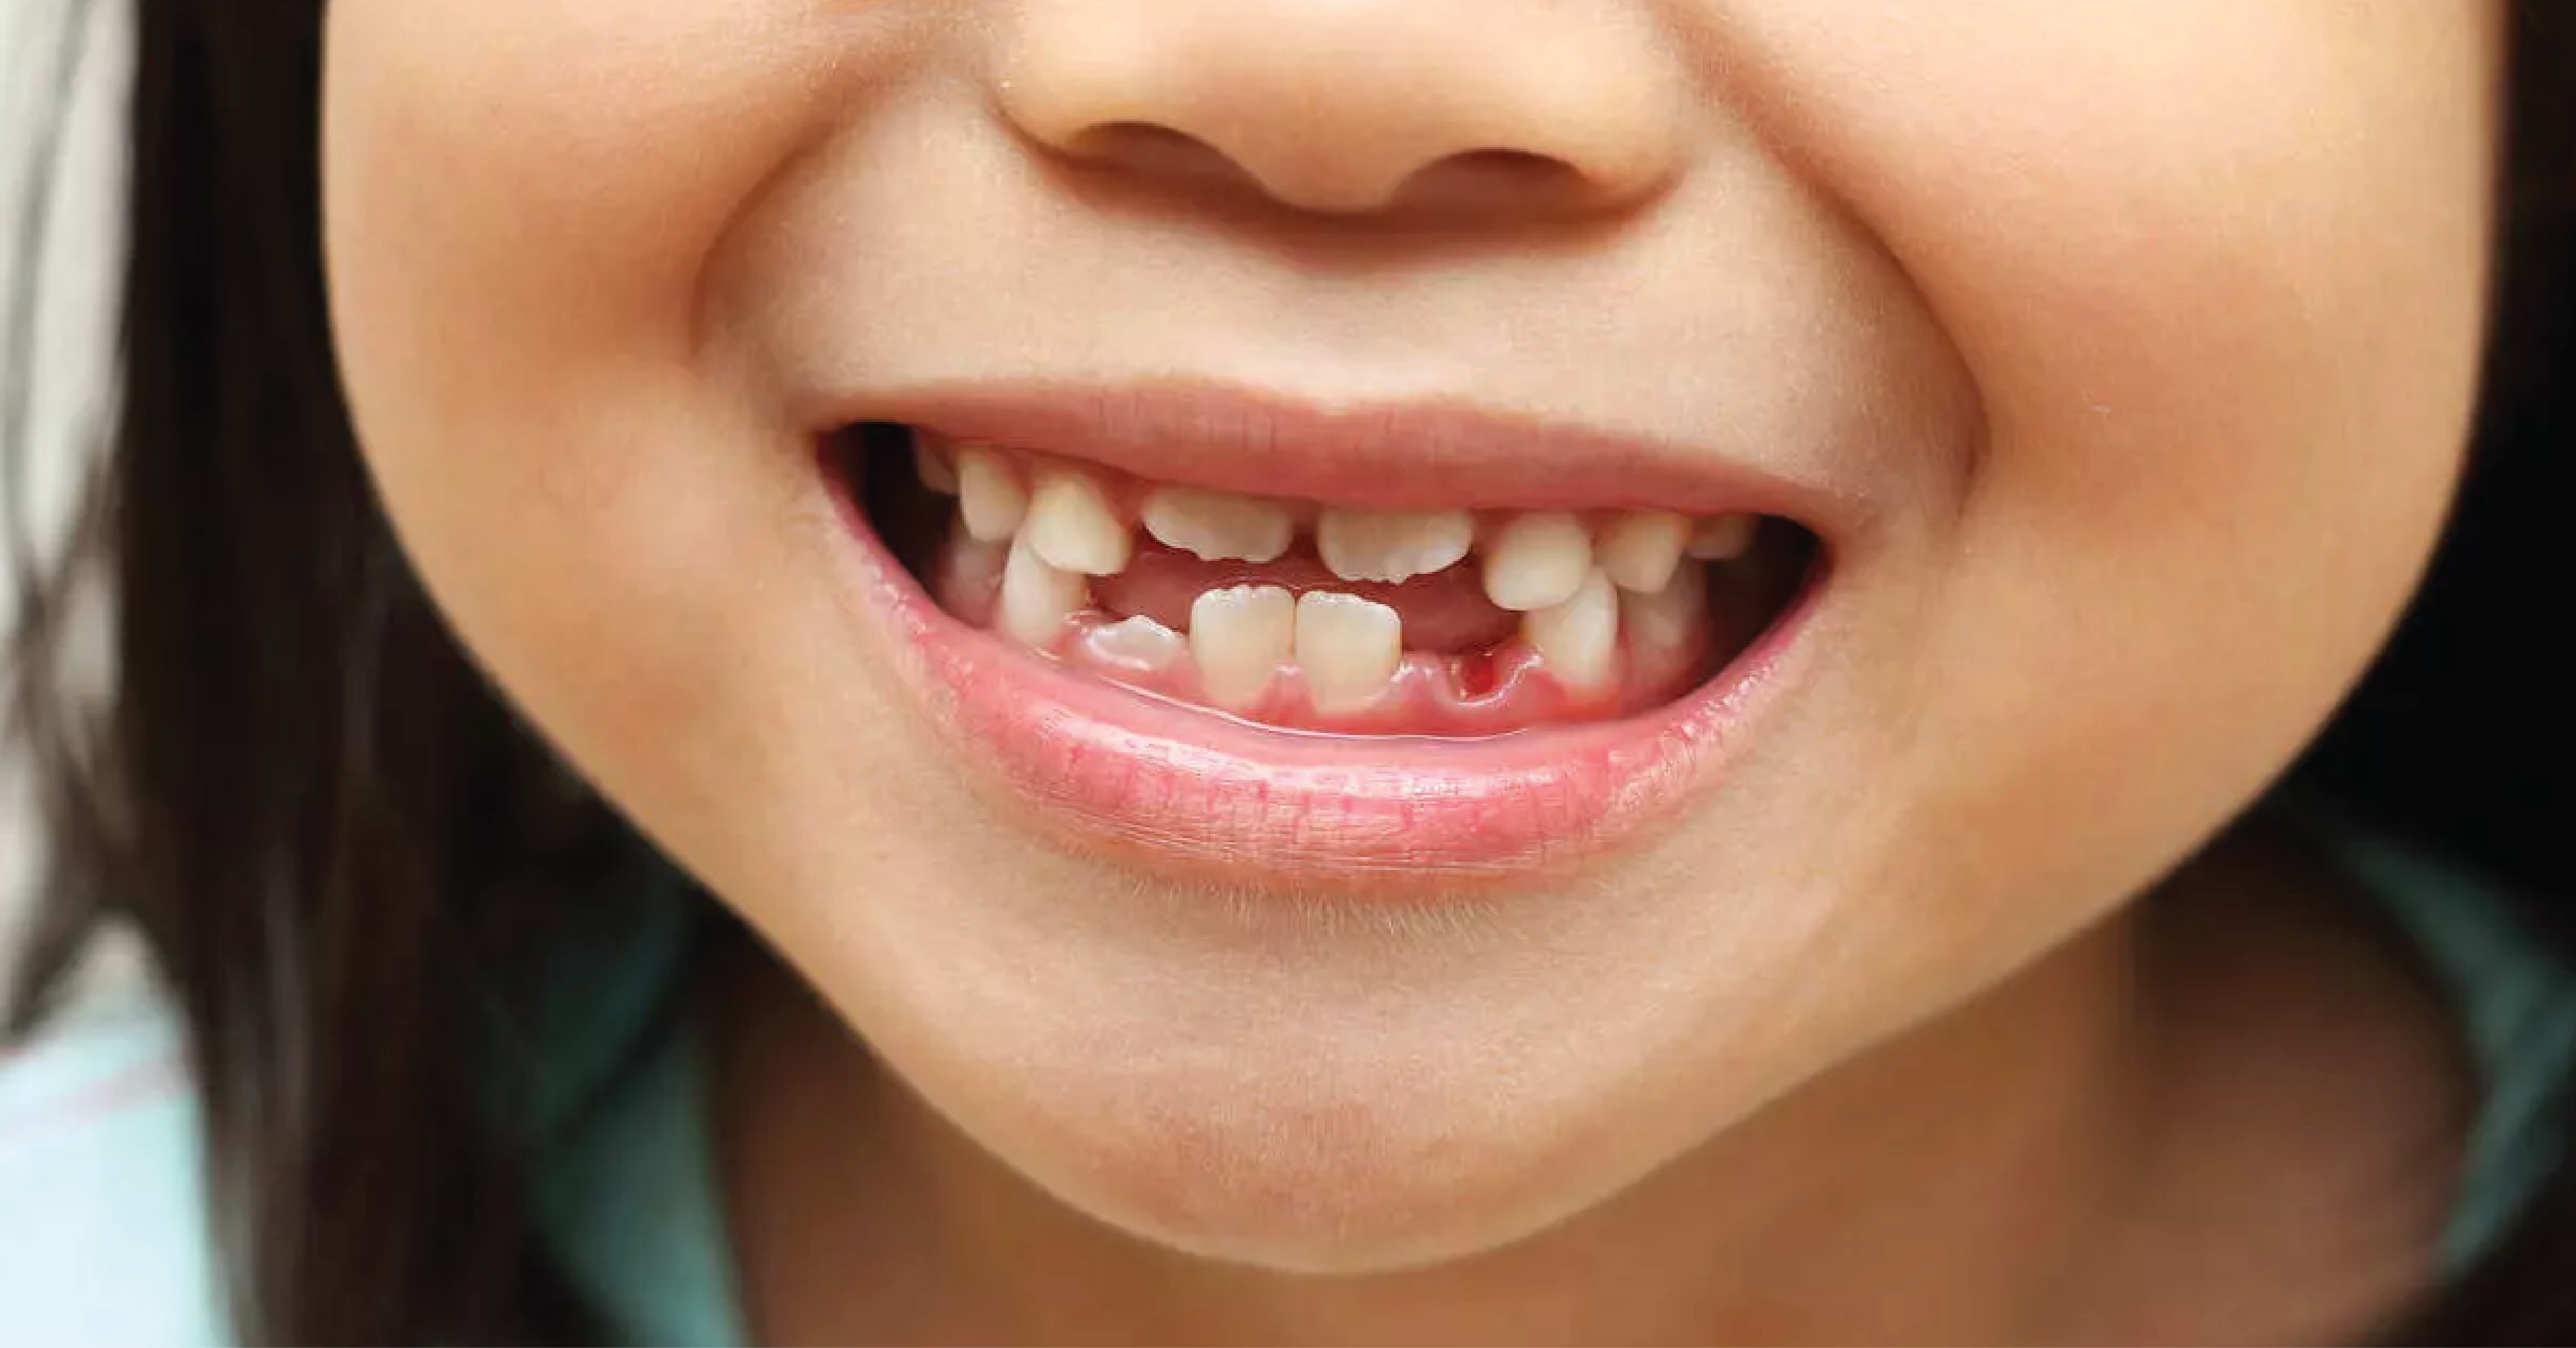 TEETH FACTS EXPLAINED BY PEDIATRIC DENTISTS